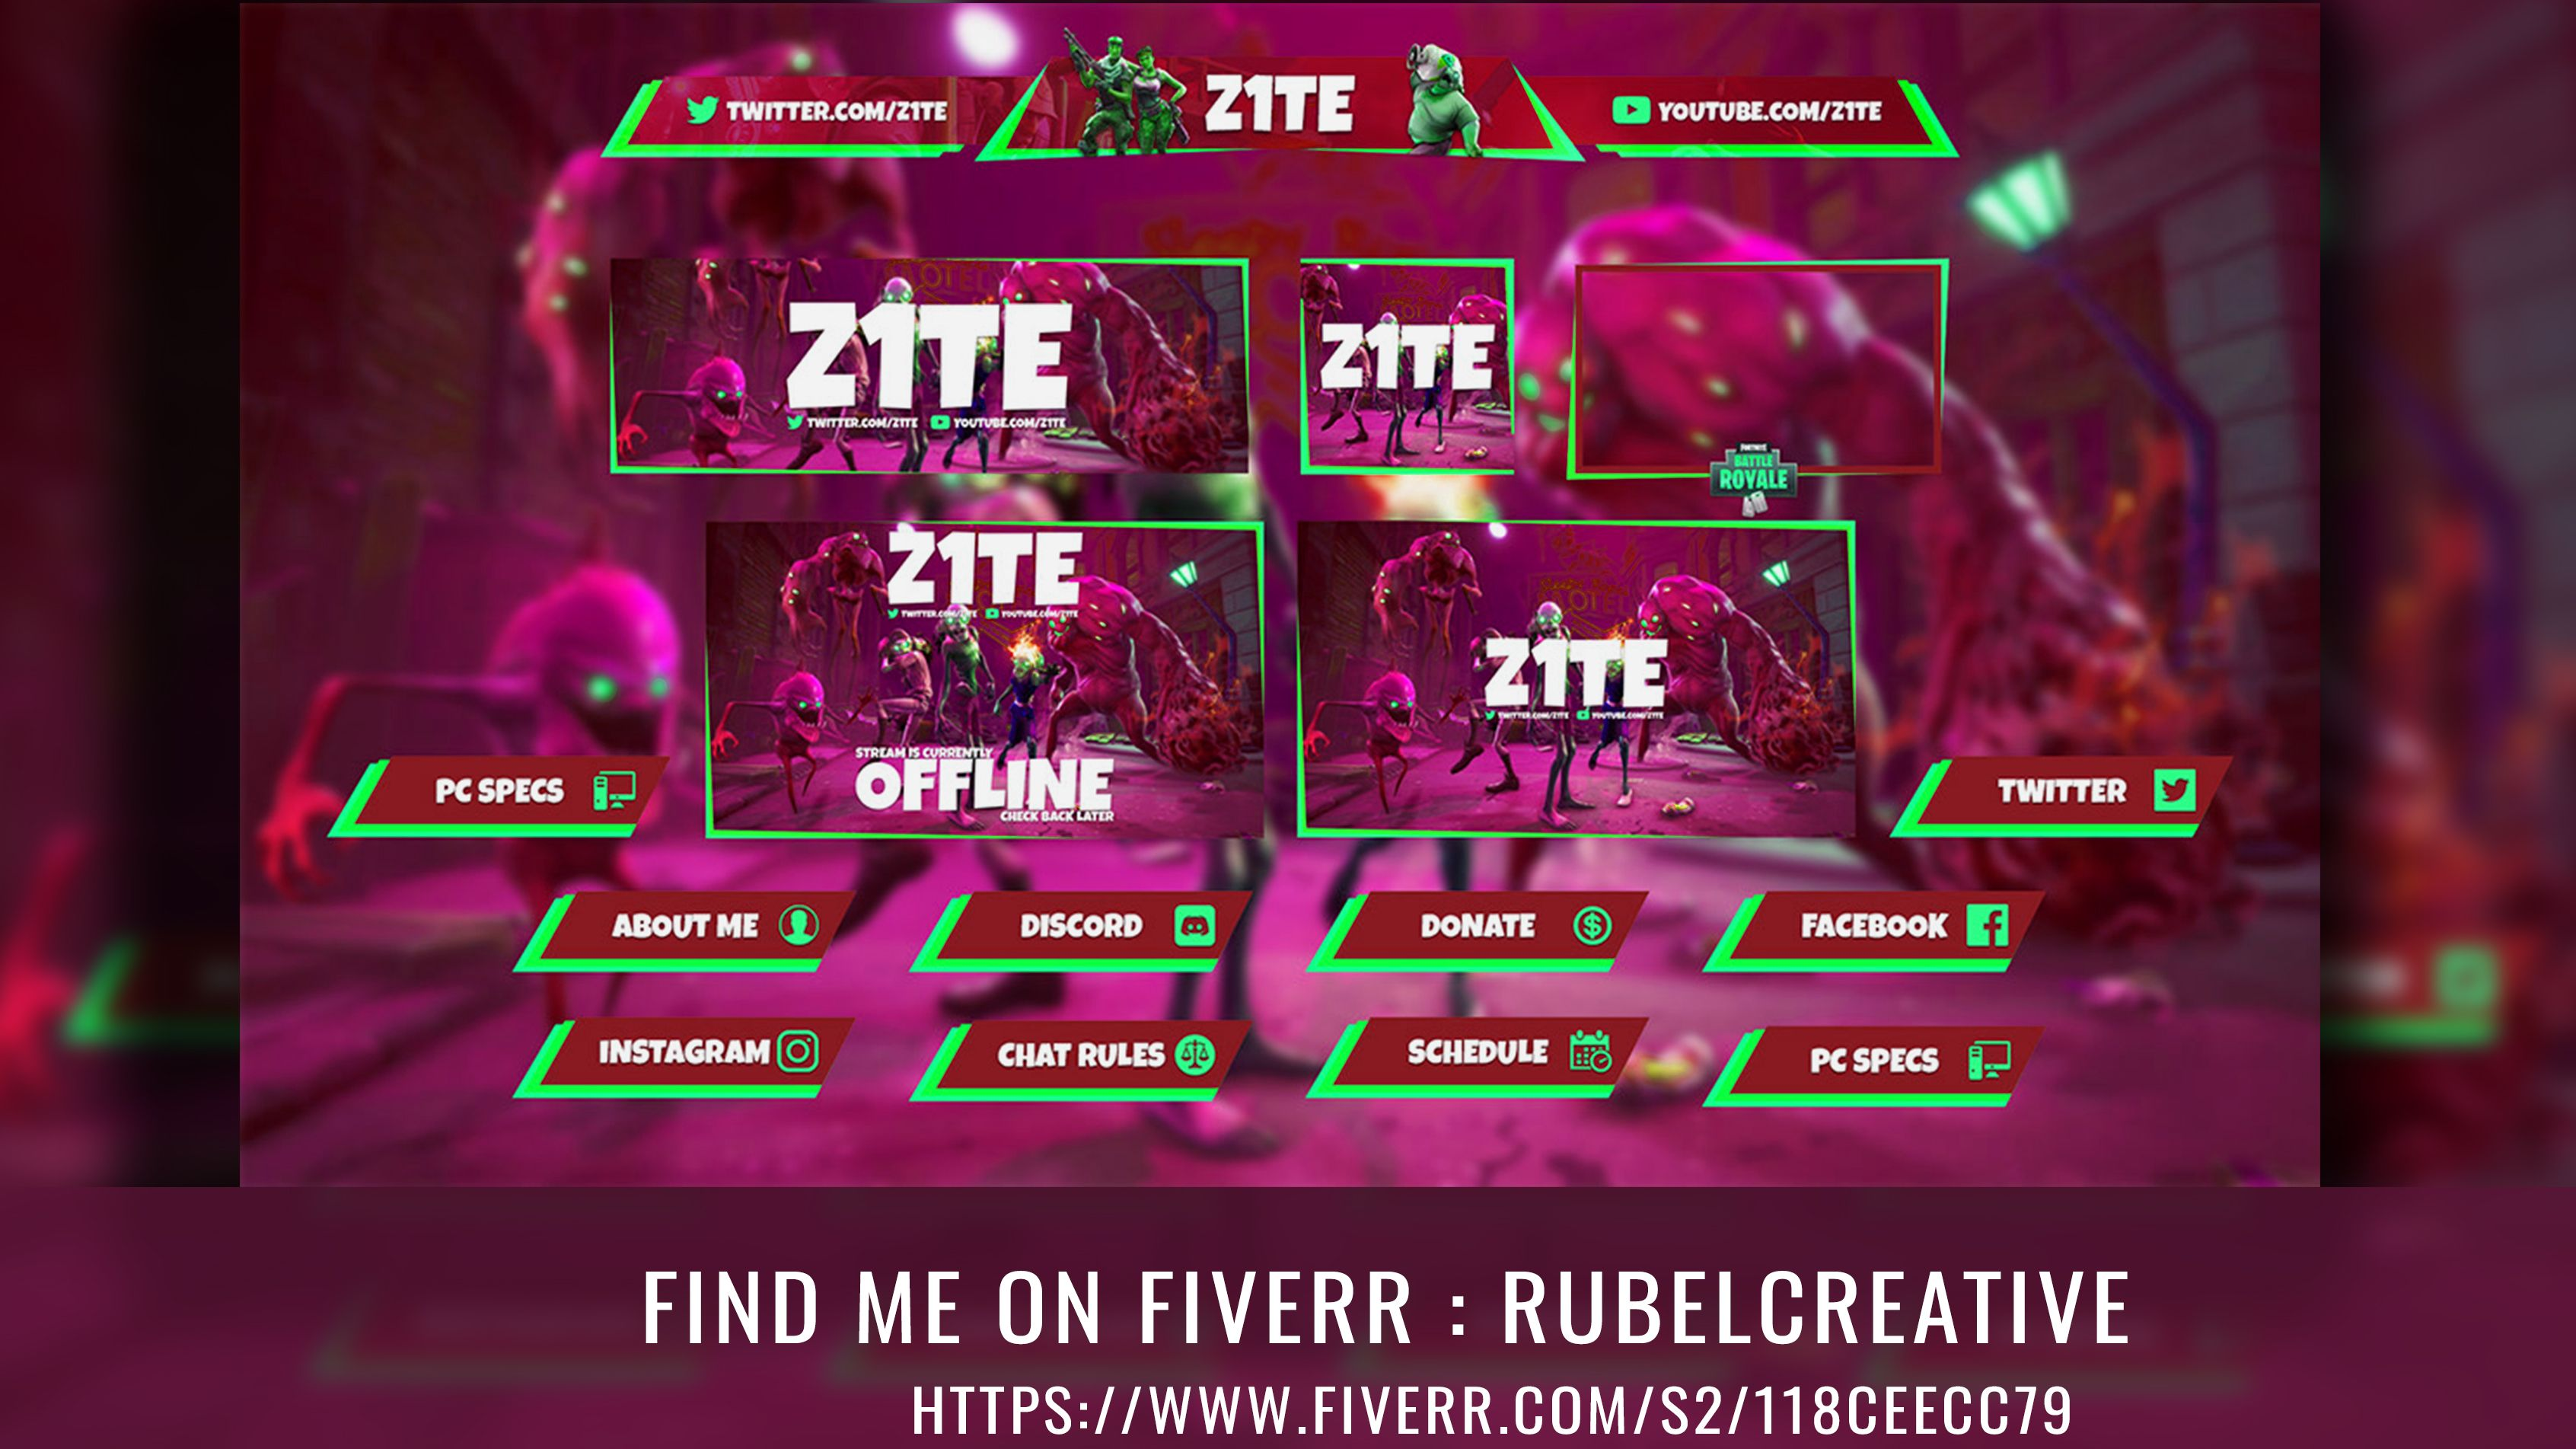 Design twitch overlay for your stream platform in 2020